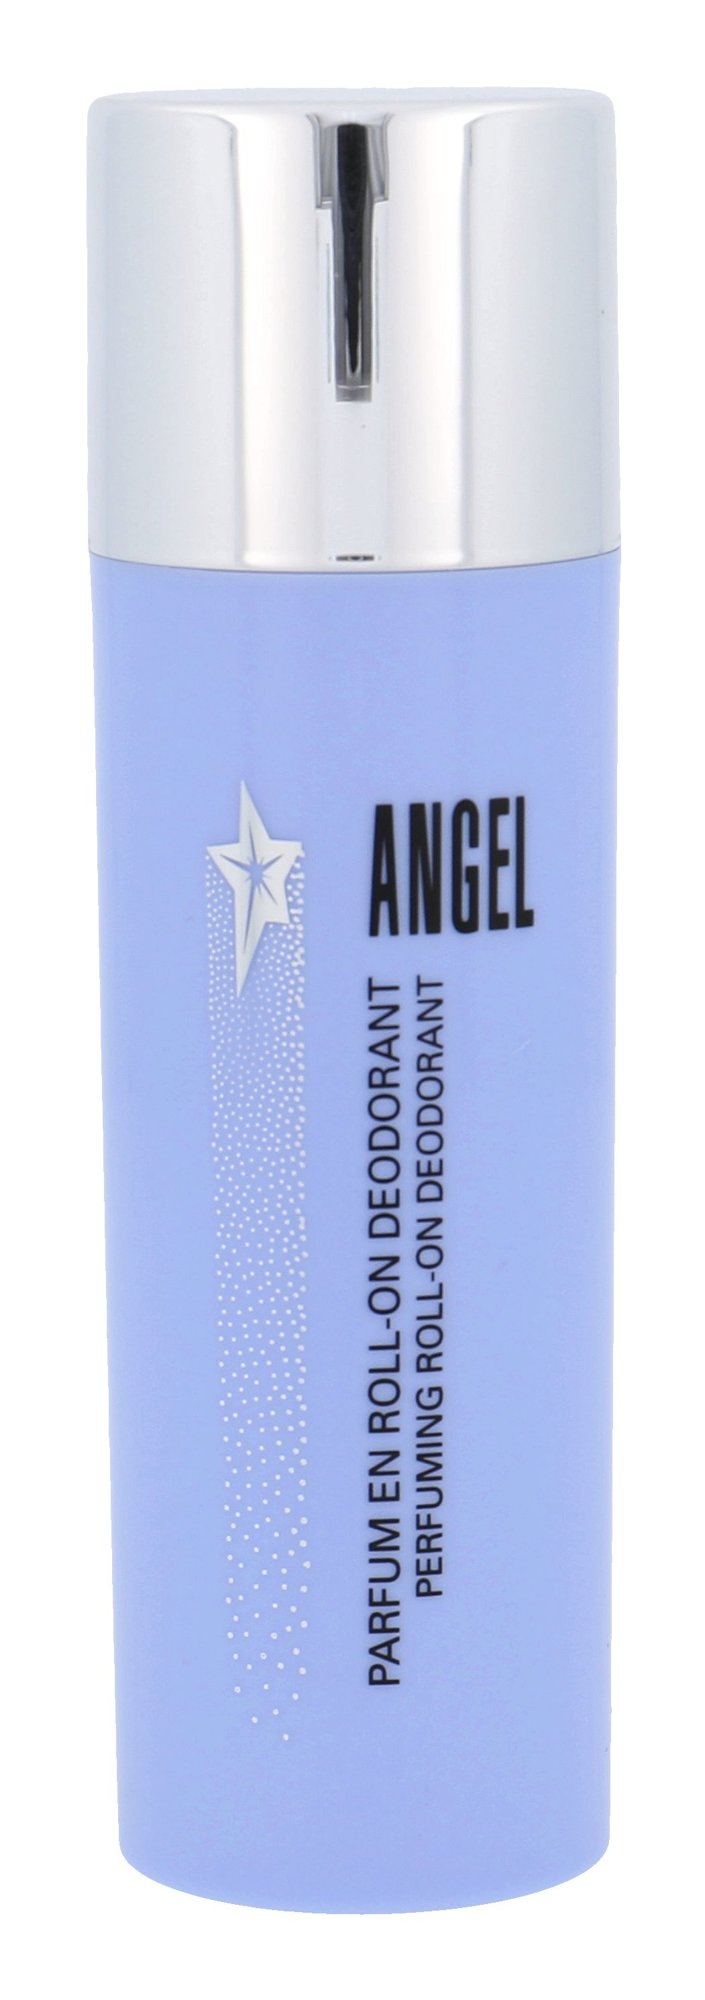 Thierry Mugler Angel Deo Rollon 50ml